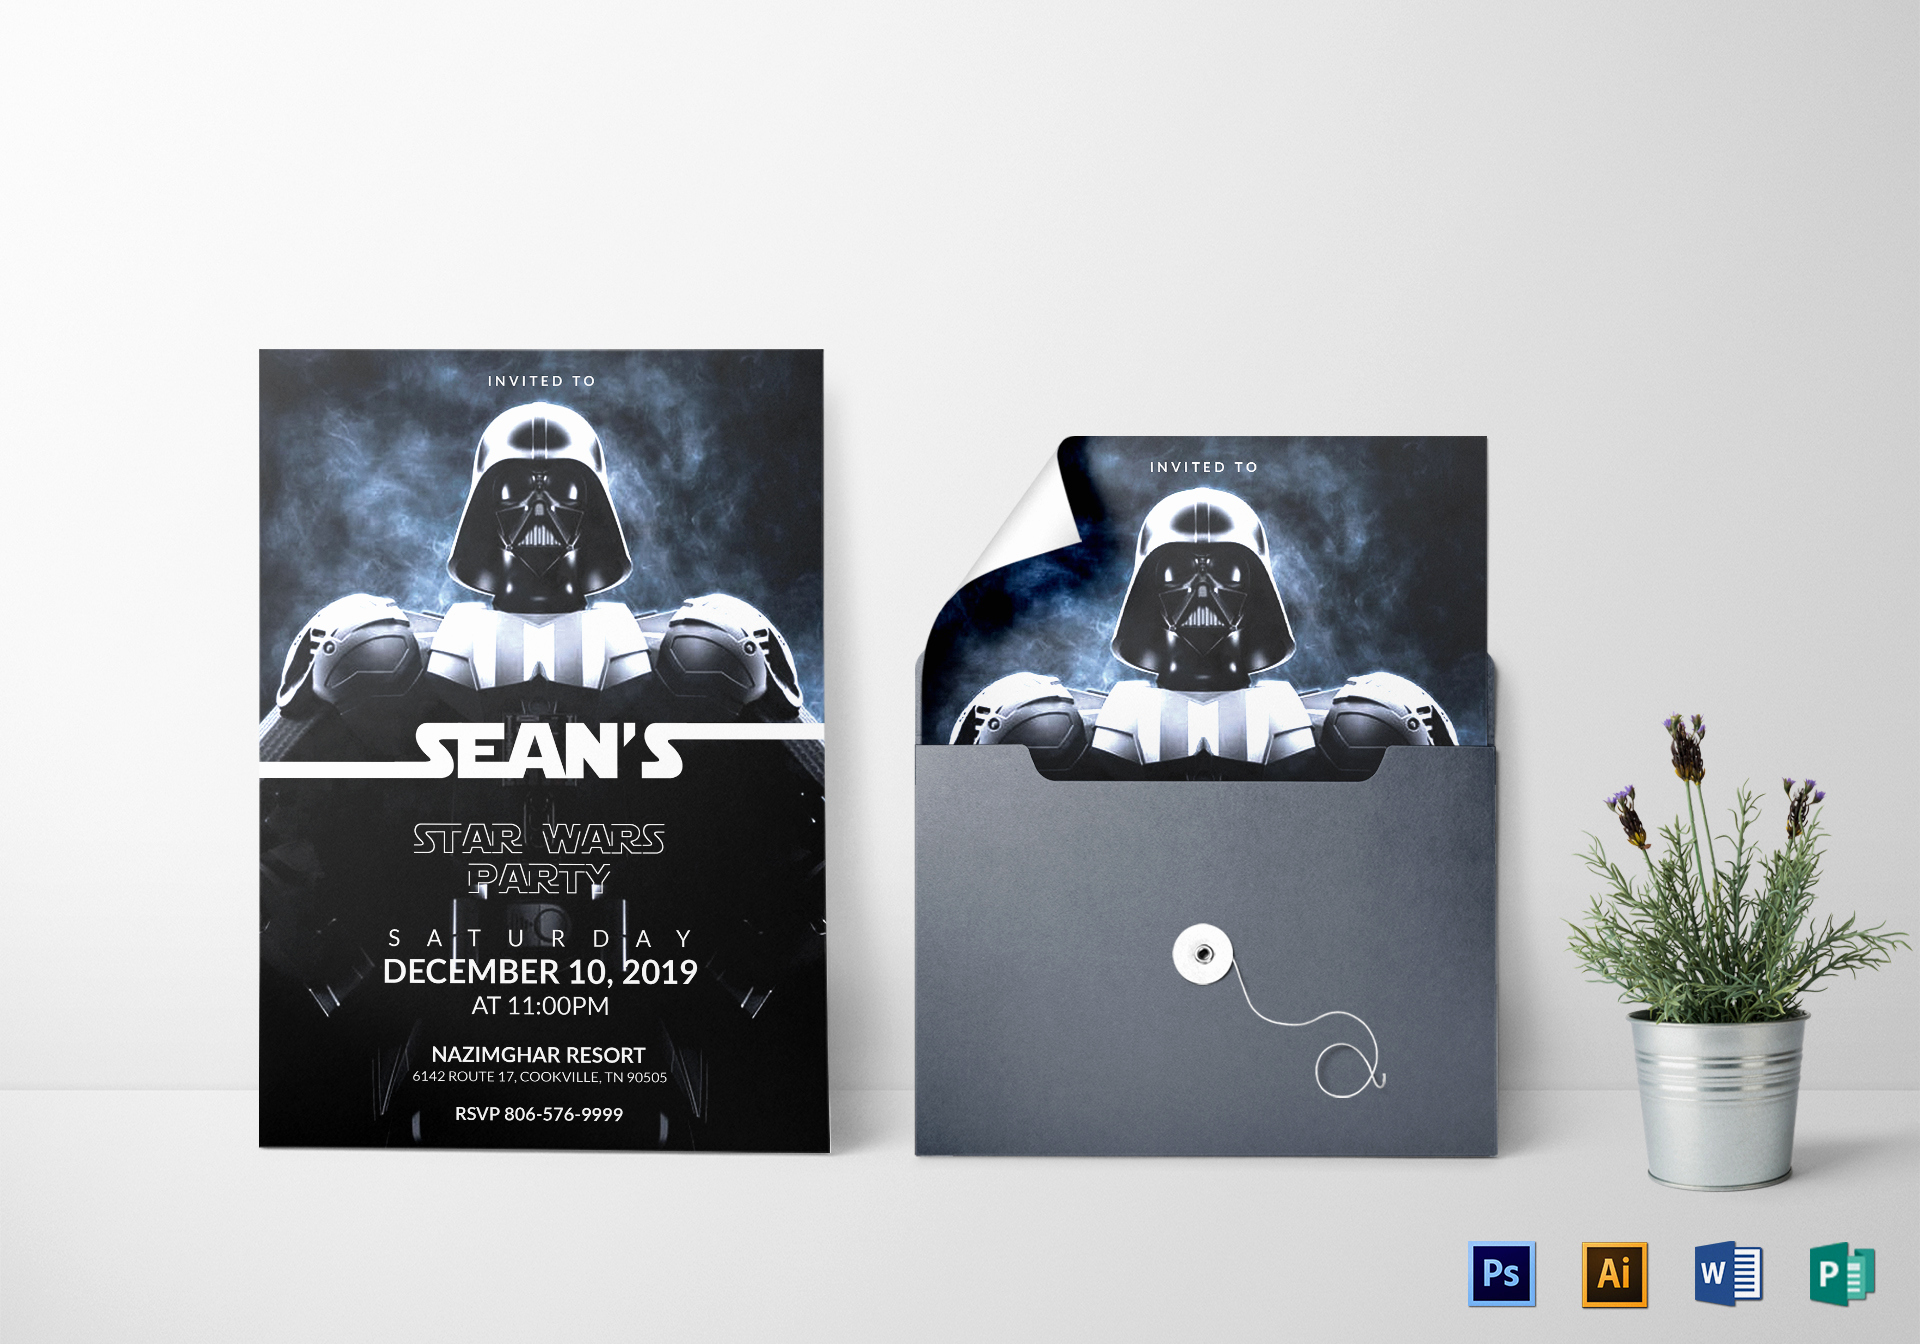 Star Wars Party Invitation Templates Lovely Star Wars the force Awakens Birthday Party Invitation